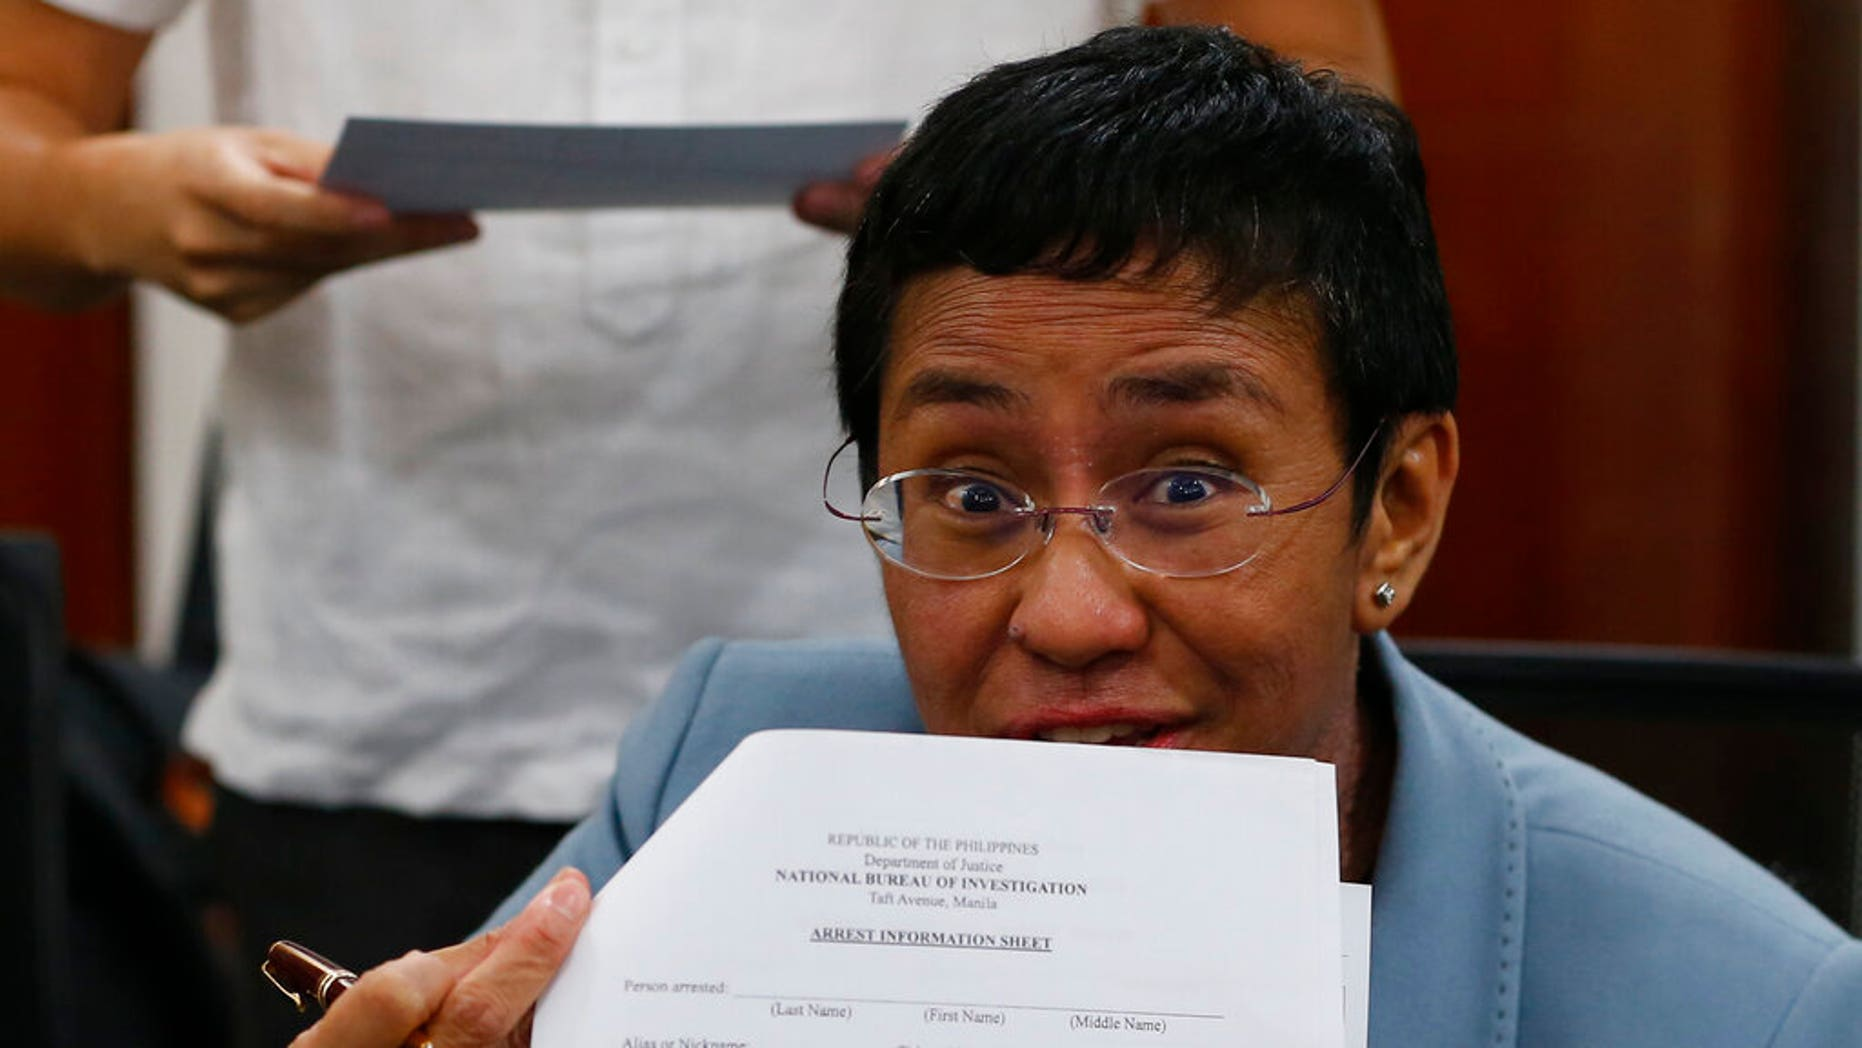 Maria Ressa, the award-winning head of a Philippine online news site Rappler that has aggressively covered President Rodrigo Duterte's policies, shows an arrest form after being arrested by National Bureau of Investigation agents in a libel case Wednesday, Feb. 13, 2019, in Manila, Philippines.